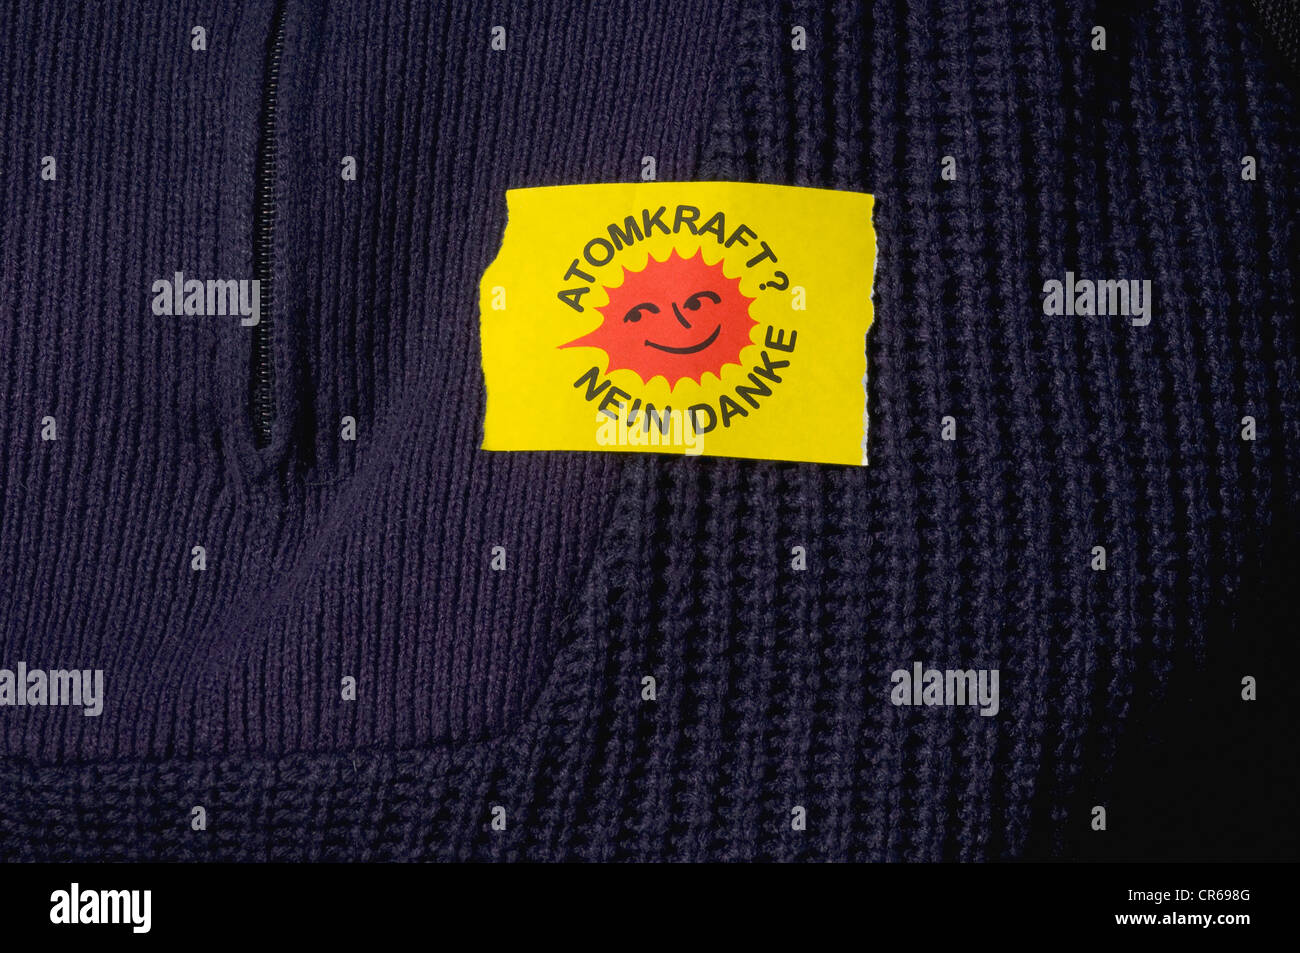 Yellow sticker 'Atomkraft nein danke', German for 'nuclear power, no thanks', on a blue knitted - Stock Image